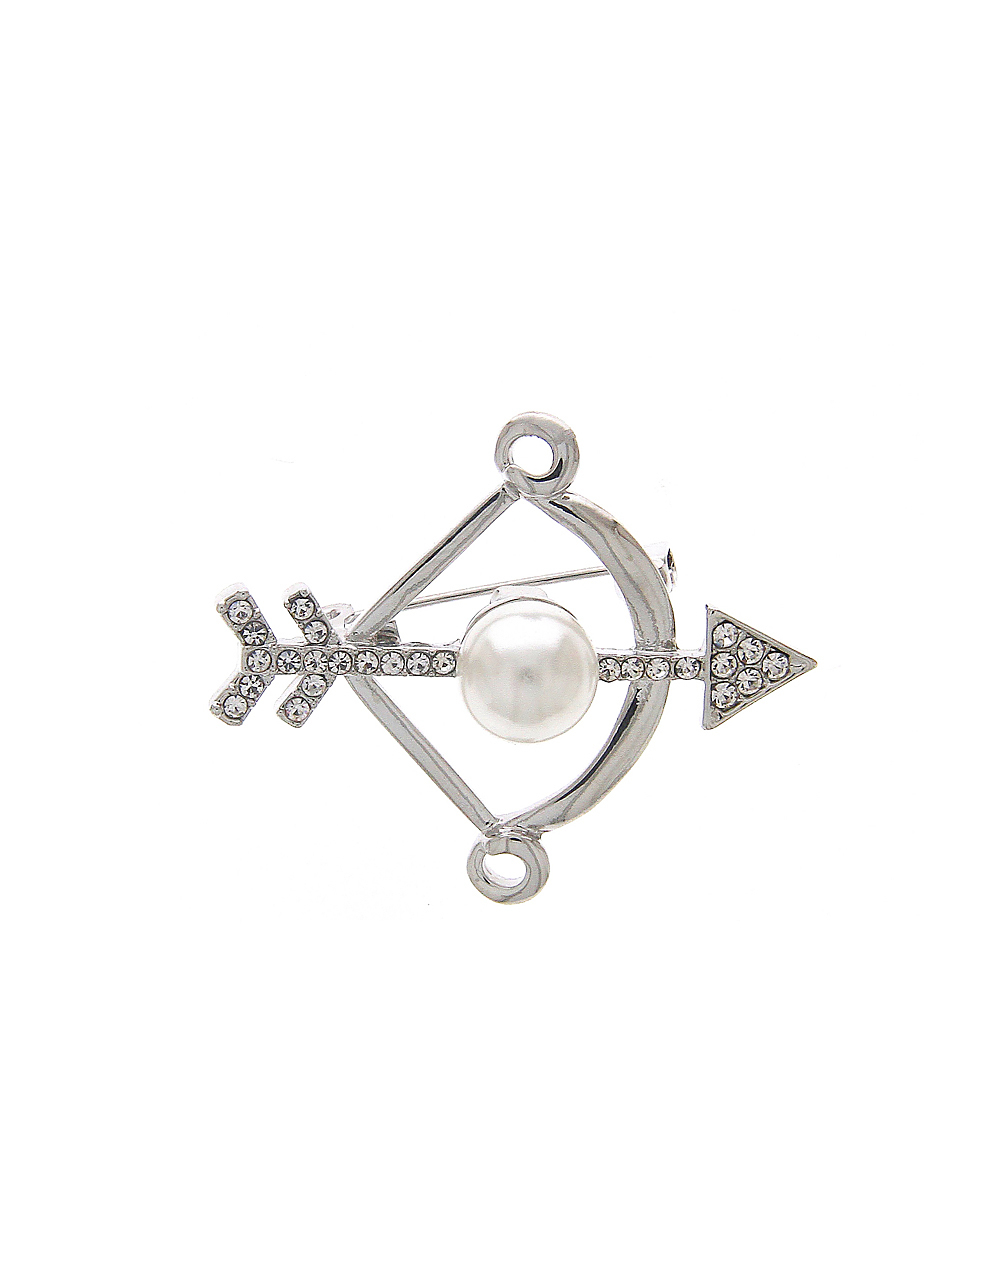 Stylish Silver Brooch Encrusted with Sparkling Stone for Men